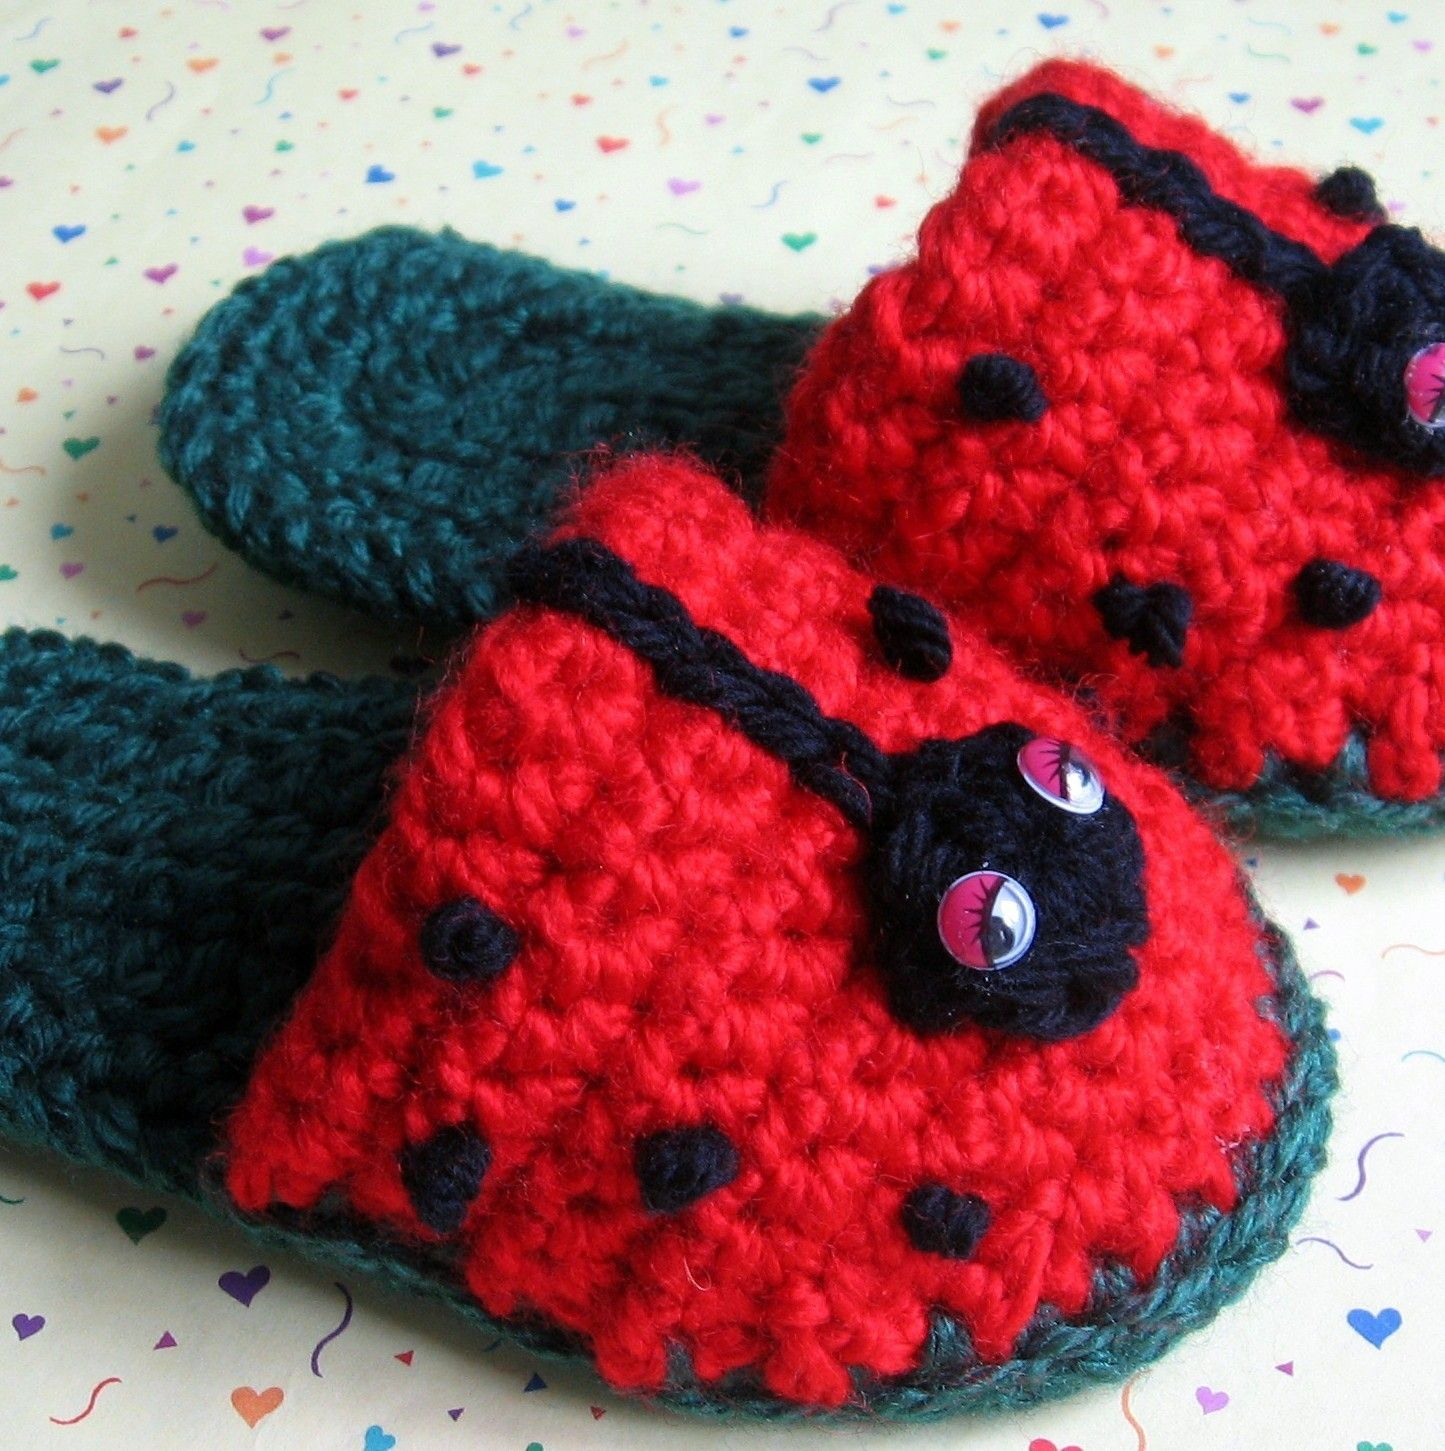 Toddler crochet slipper pattern lady bug fun instant download free crochet slipper patterns bankloansurffo Image collections